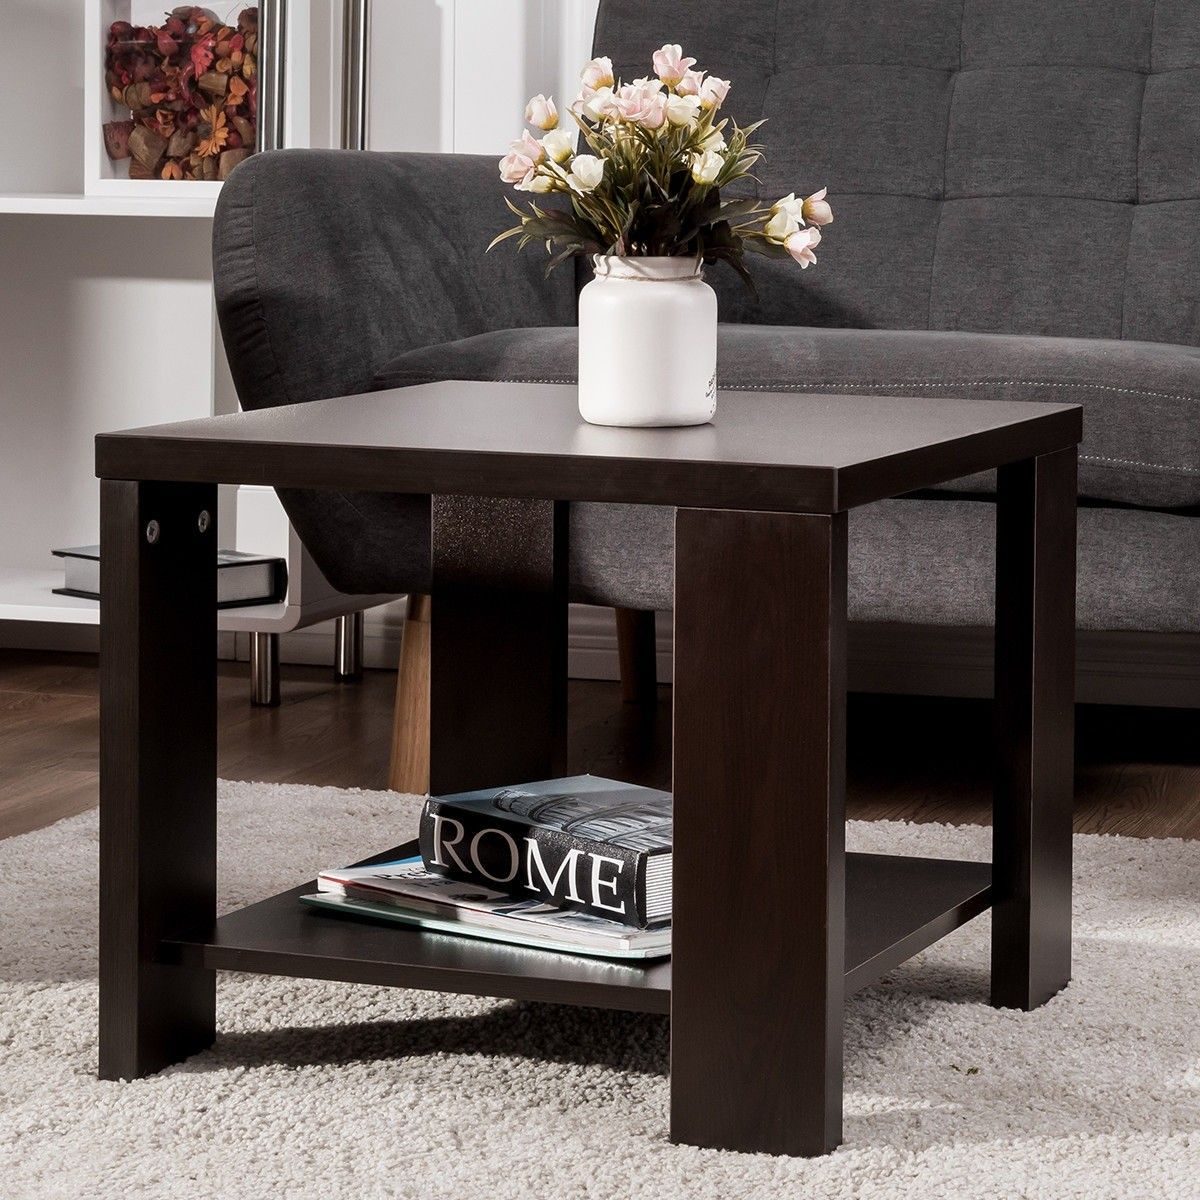 Square Sofa Side Coffee Tea Table With Storage Shelf Living Room Side Table Living Room Table Living Room Furniture [ 1200 x 1200 Pixel ]